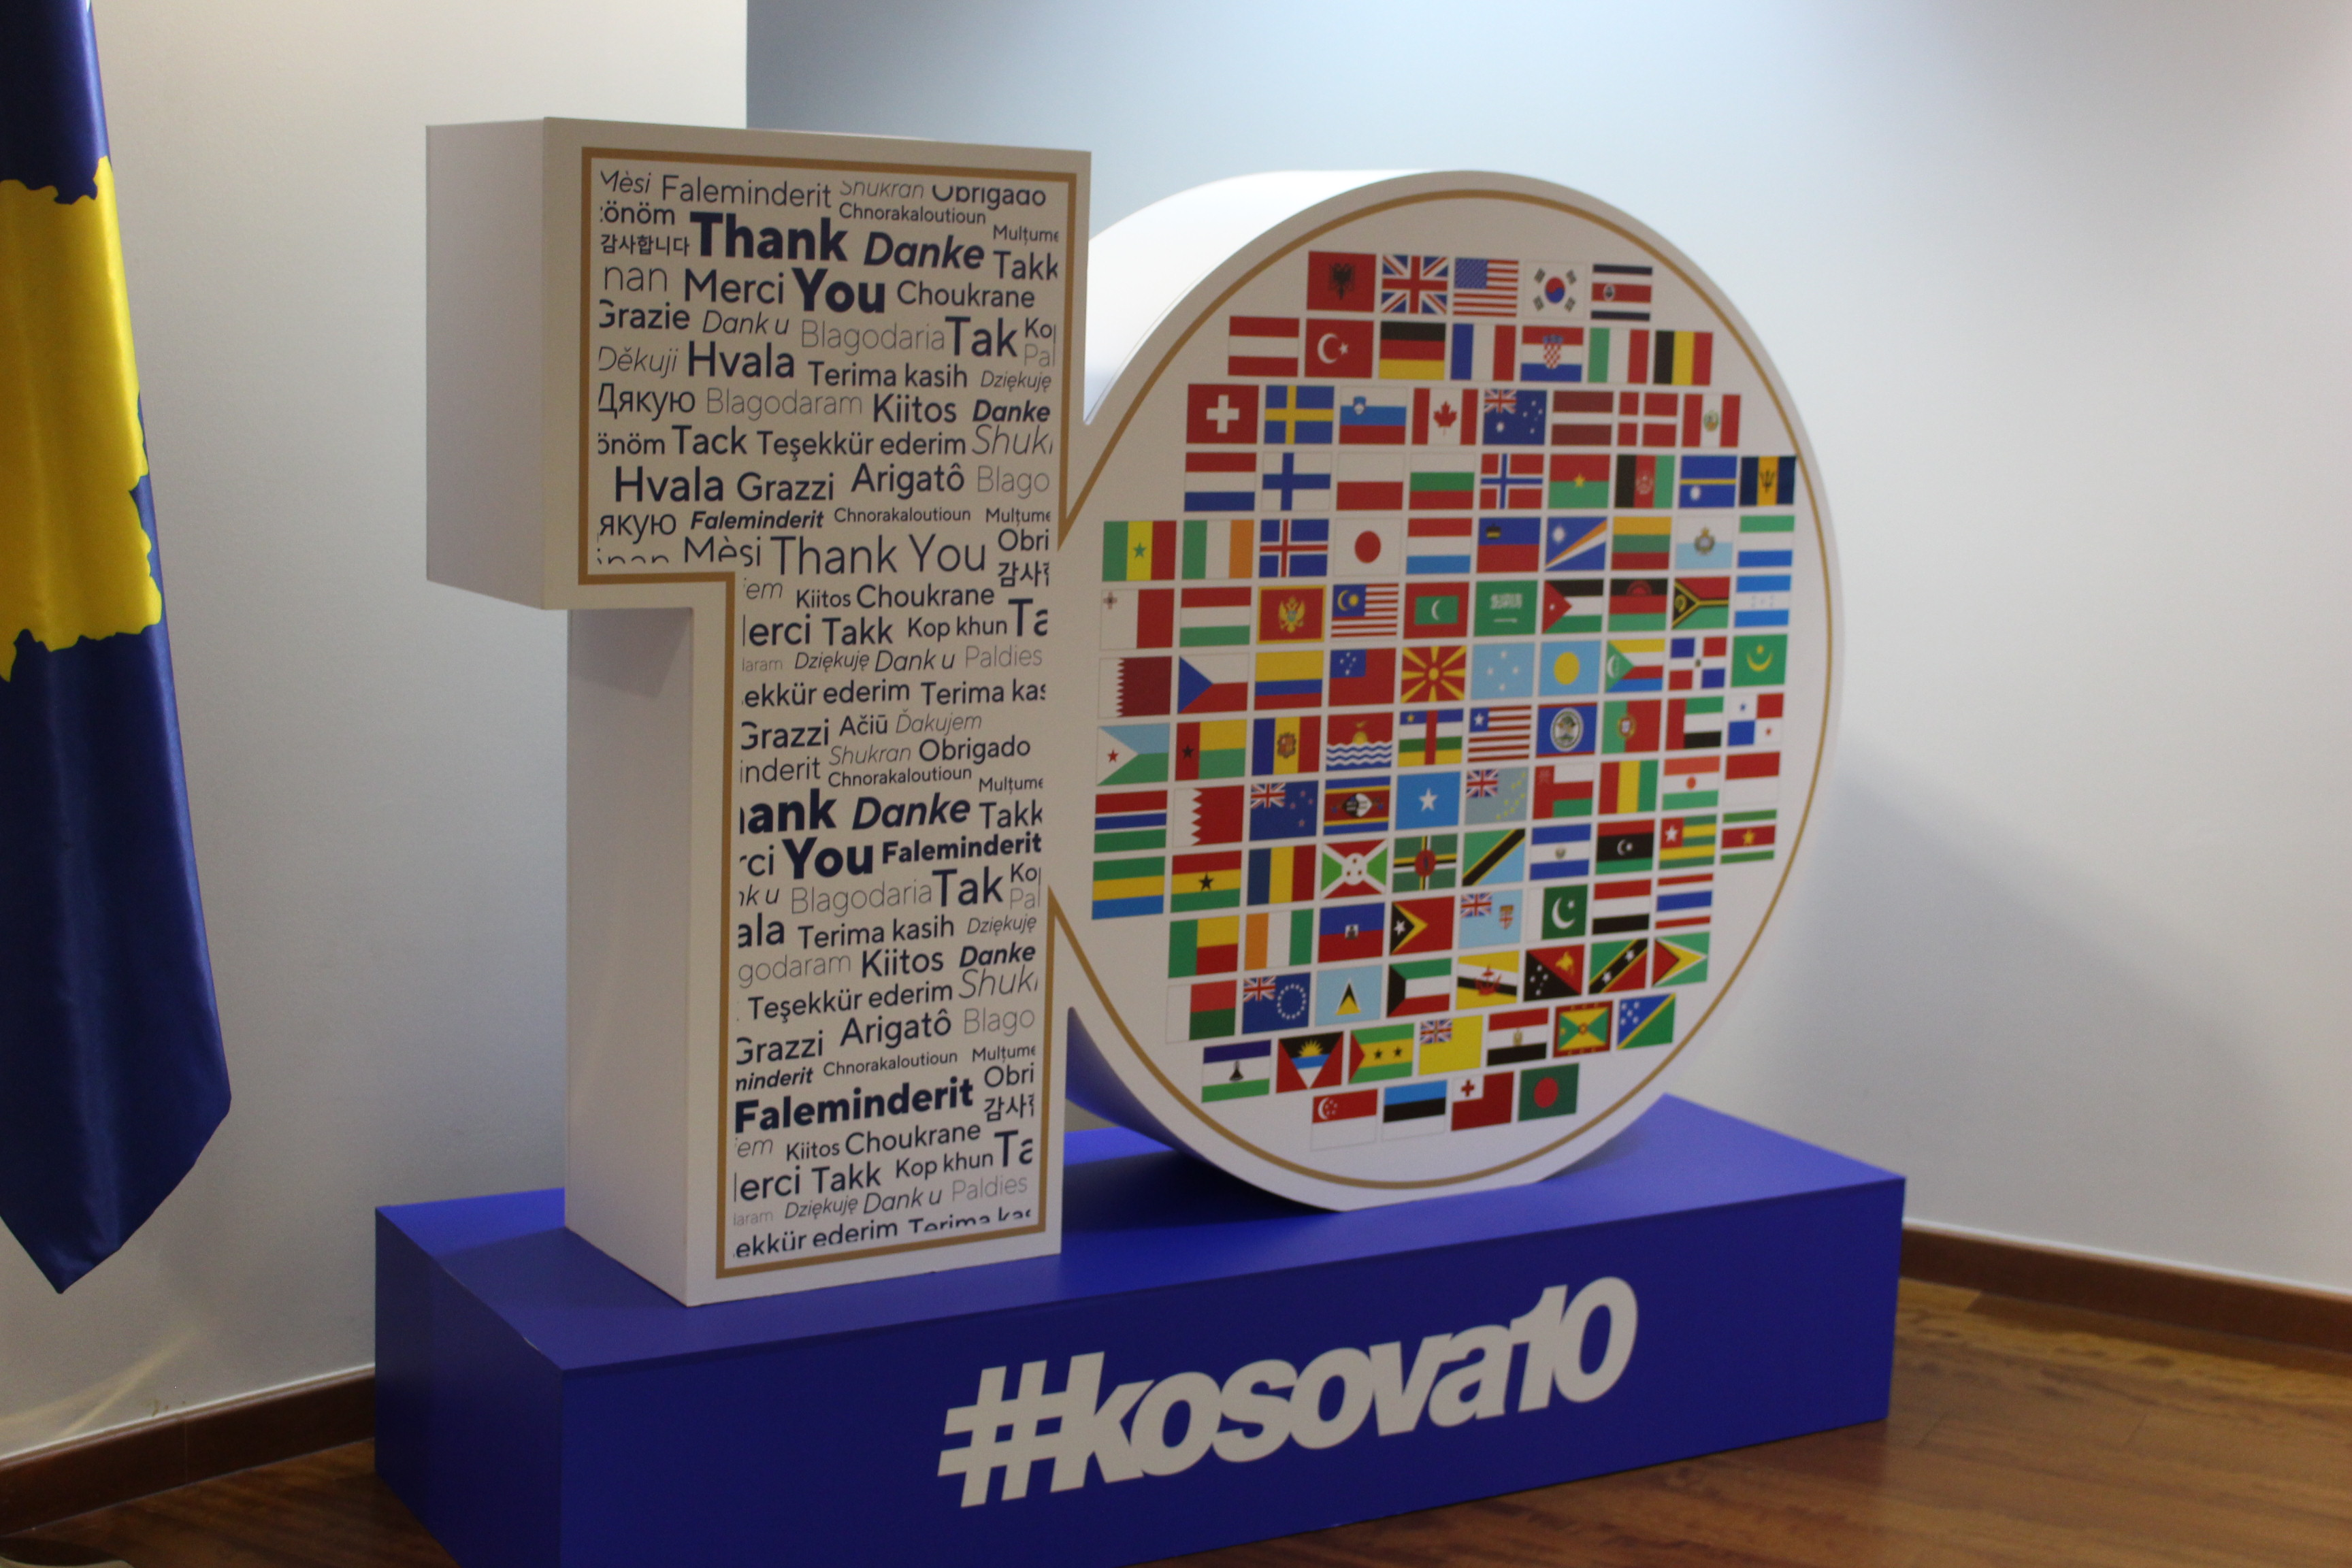 A graphic display commemorating USAID's 10 years in Kosovo, with a hashtag #kosovo10 printed on the base.